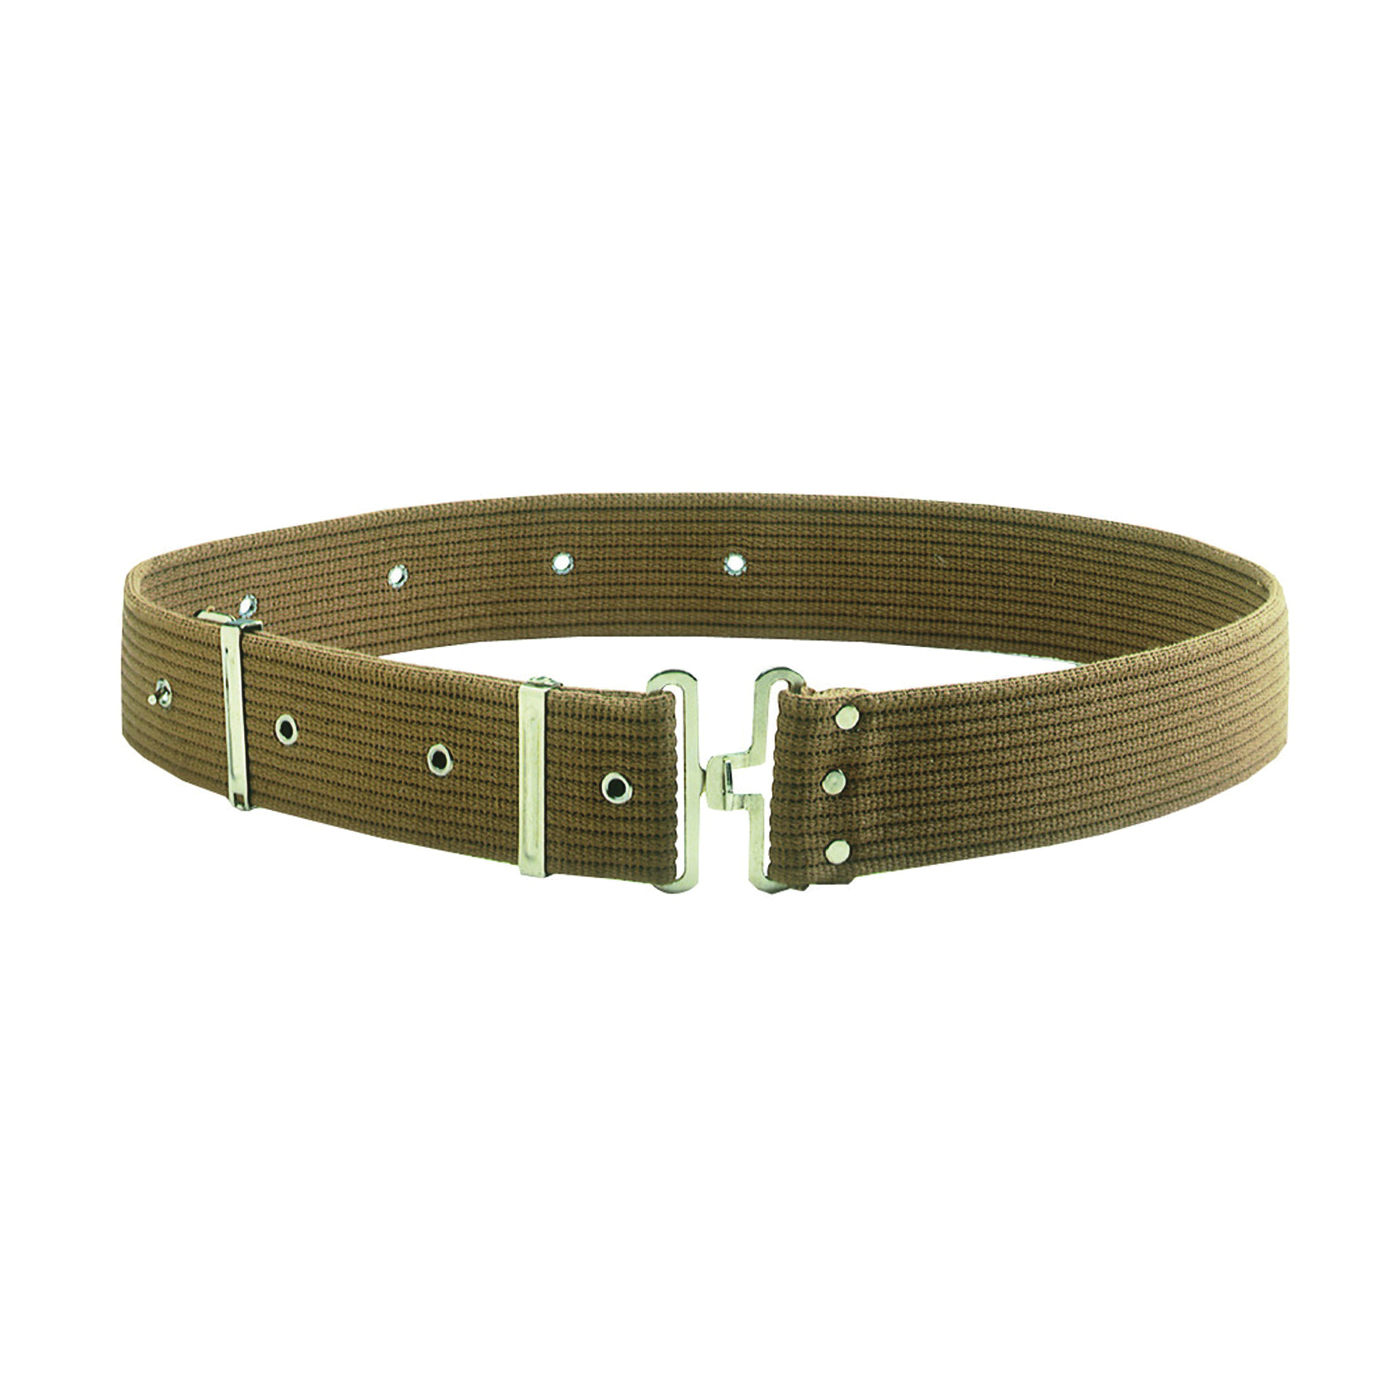 Picture of CLC Tool Works C501 Work Belt, 29 to 46 in Waist, Cotton